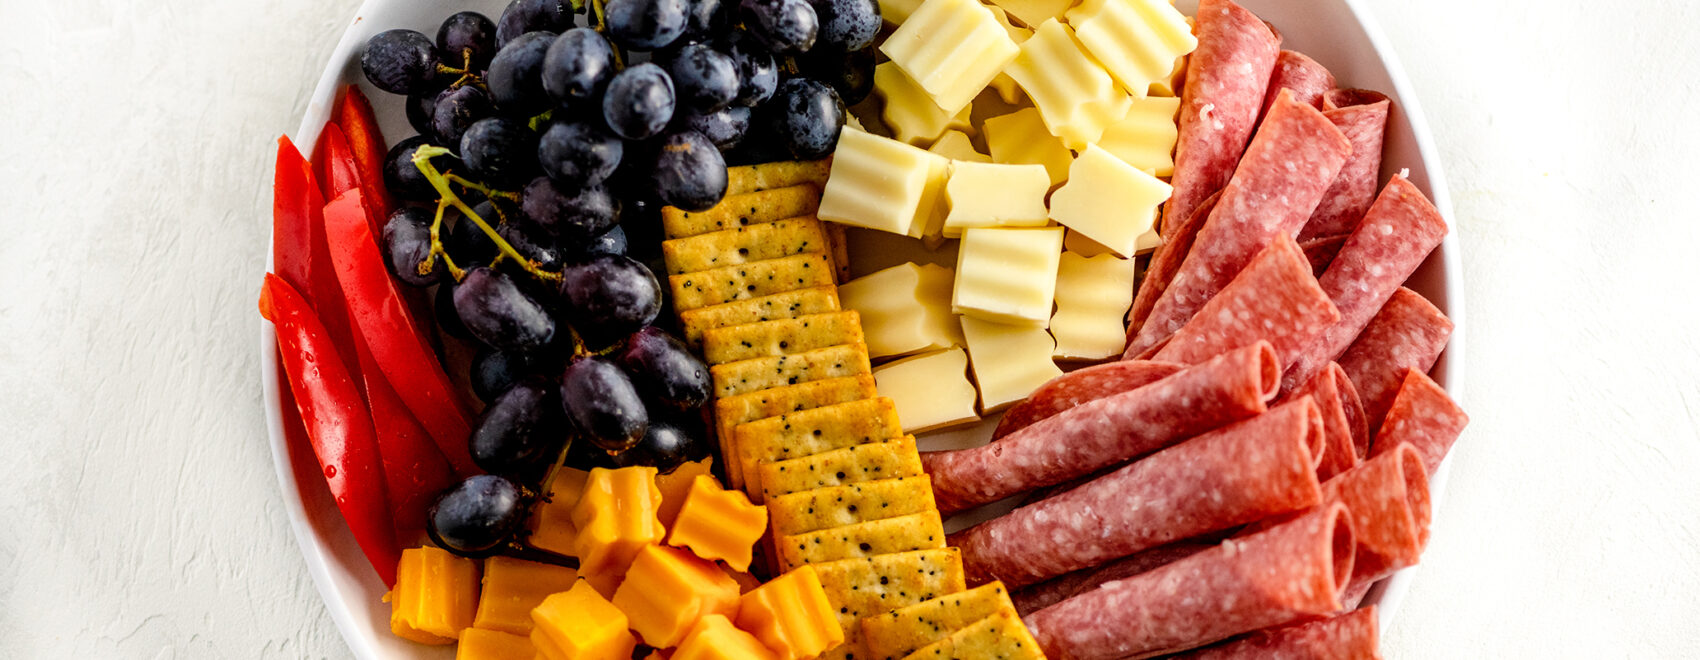 charcuterie board of rolled up meats, cheese bites, crackers, grapes and veggies on a white plate